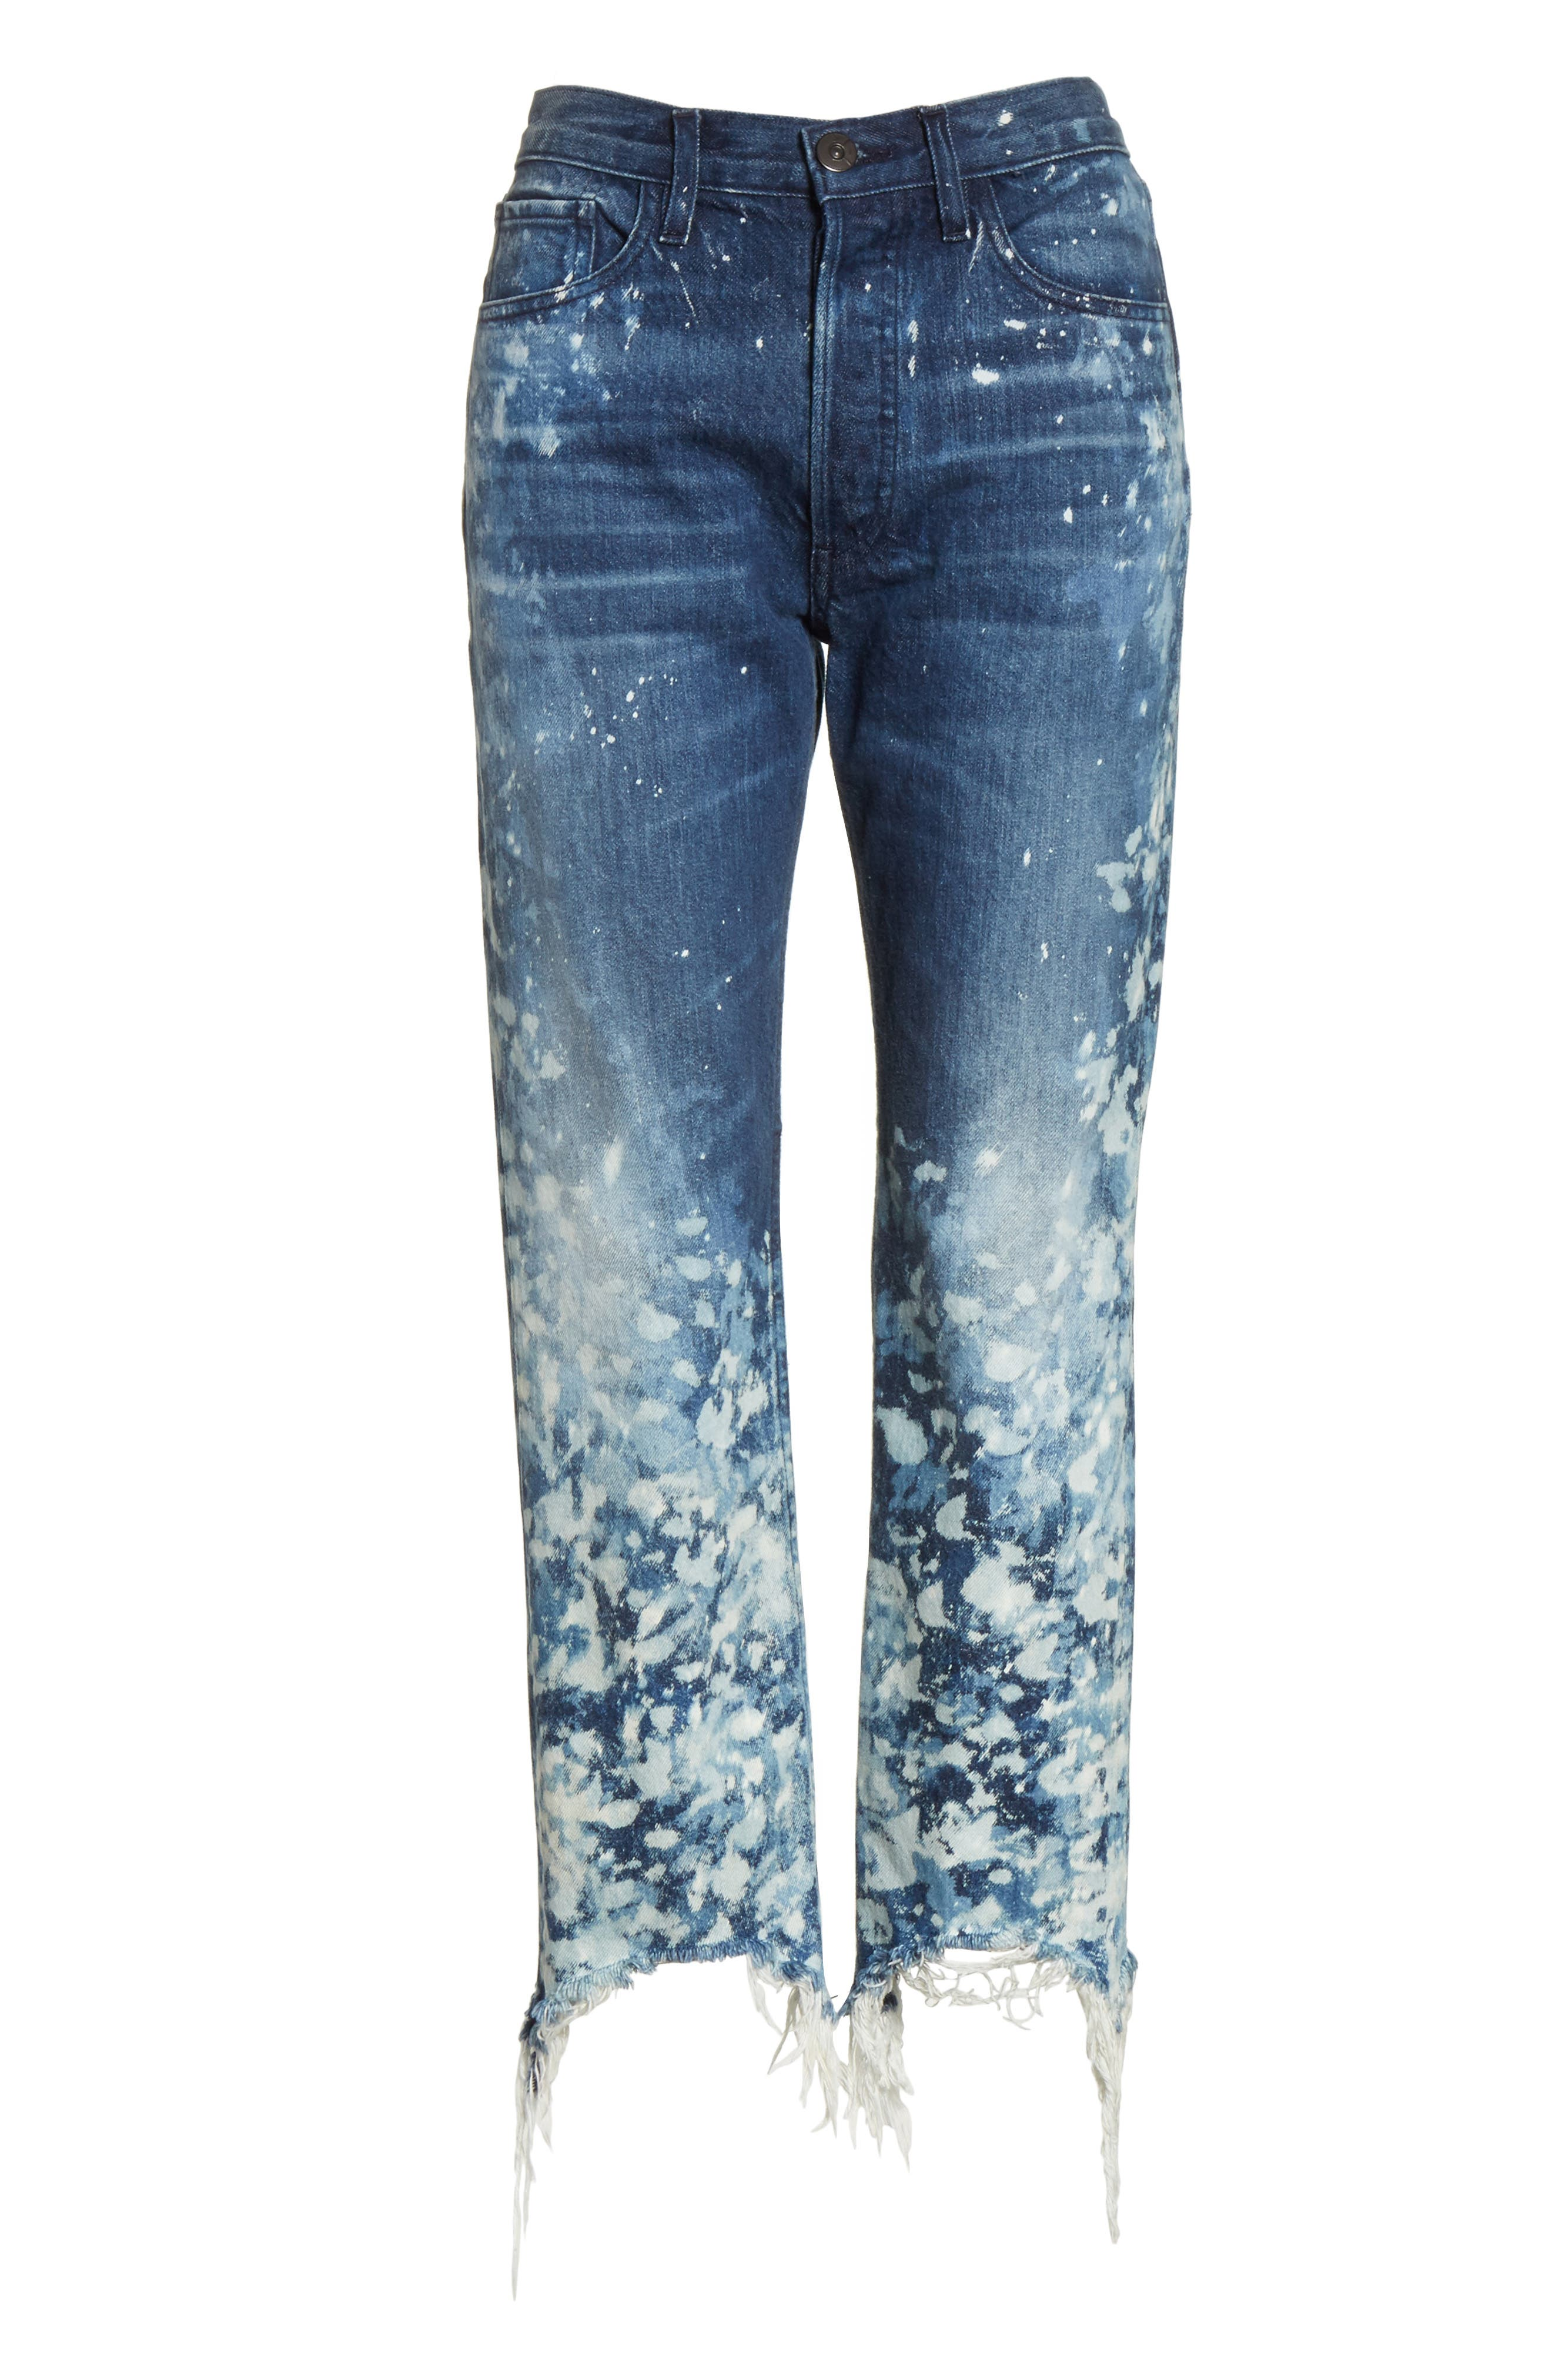 W3 Higher Ground Bleached Ankle Slim Fit Jeans,                             Alternate thumbnail 27, color,